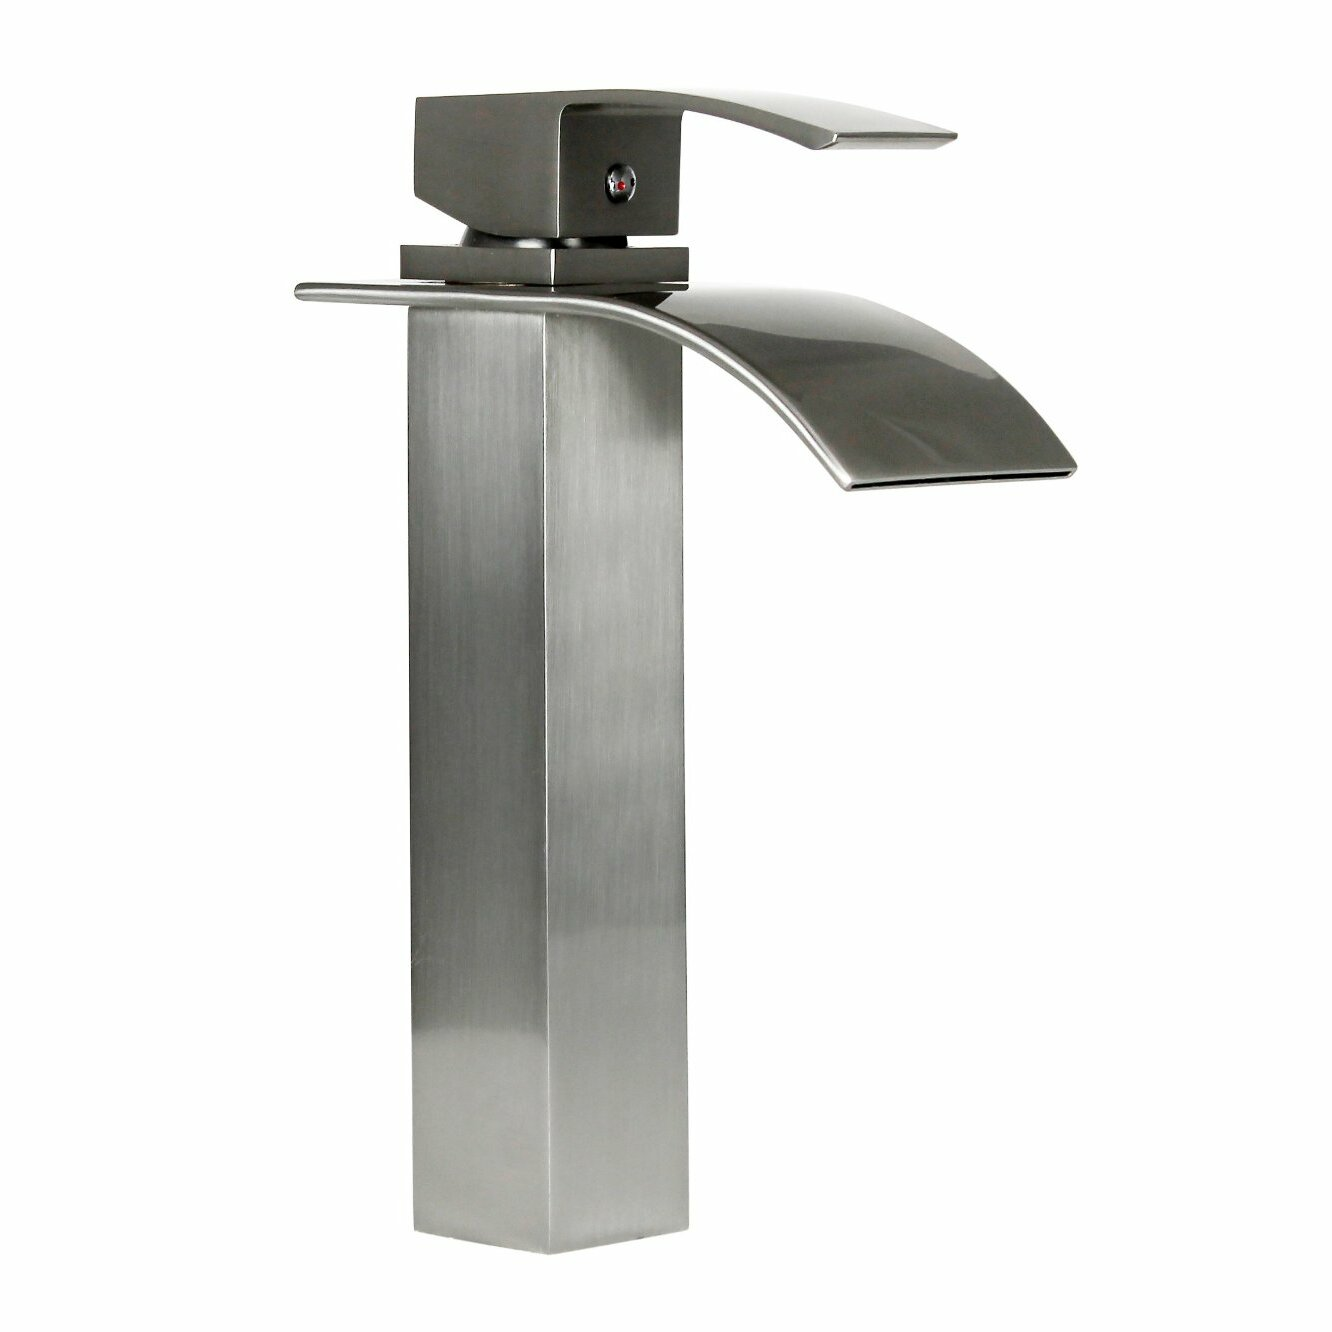 Modern Kitchen Sink Faucets: Dyconn Faucet Wye Modern Bathroom Vessel Sink Faucet